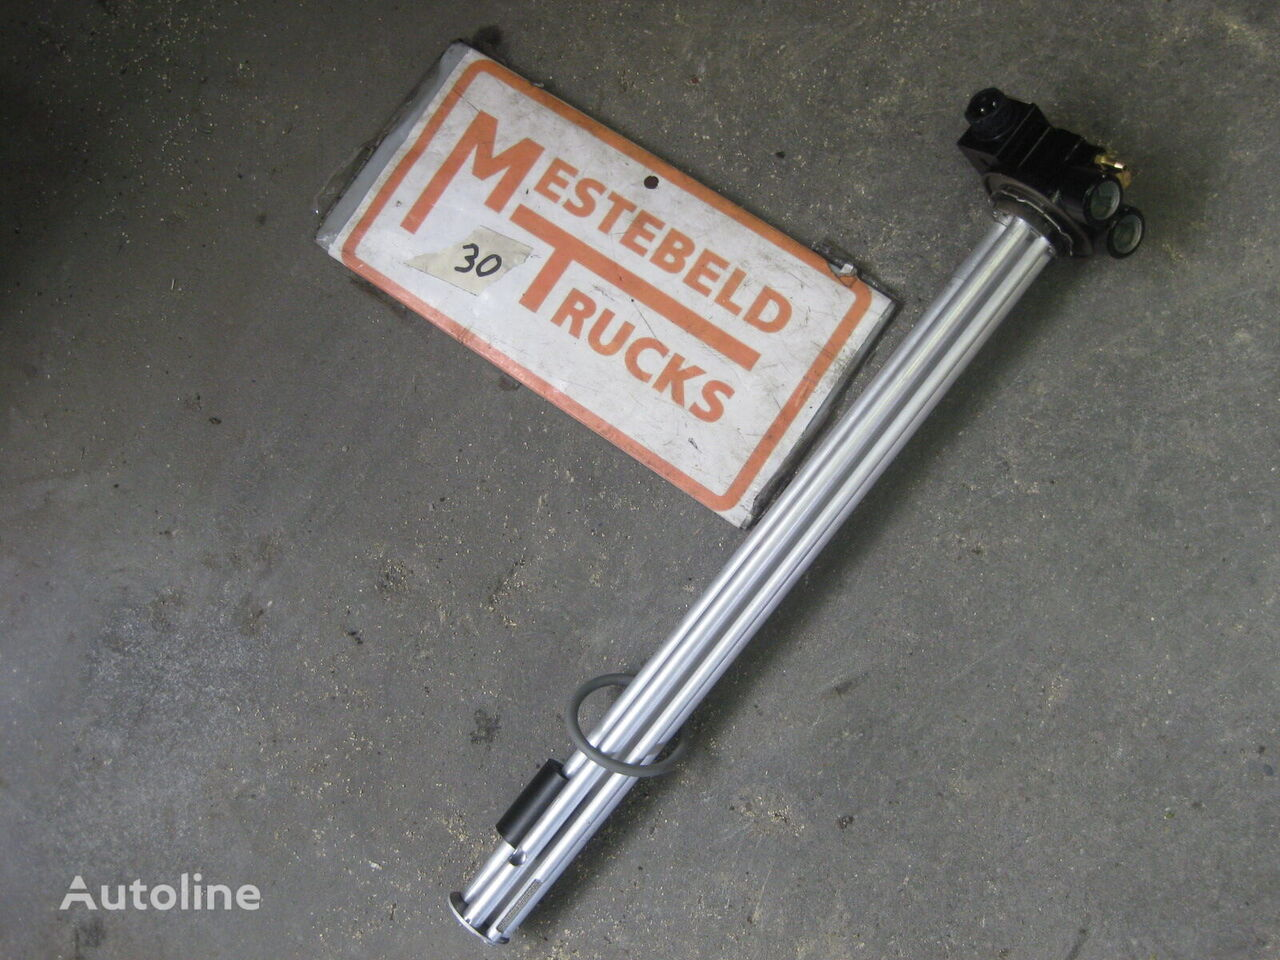 Vlotter IVECO spare parts for IVECO truck